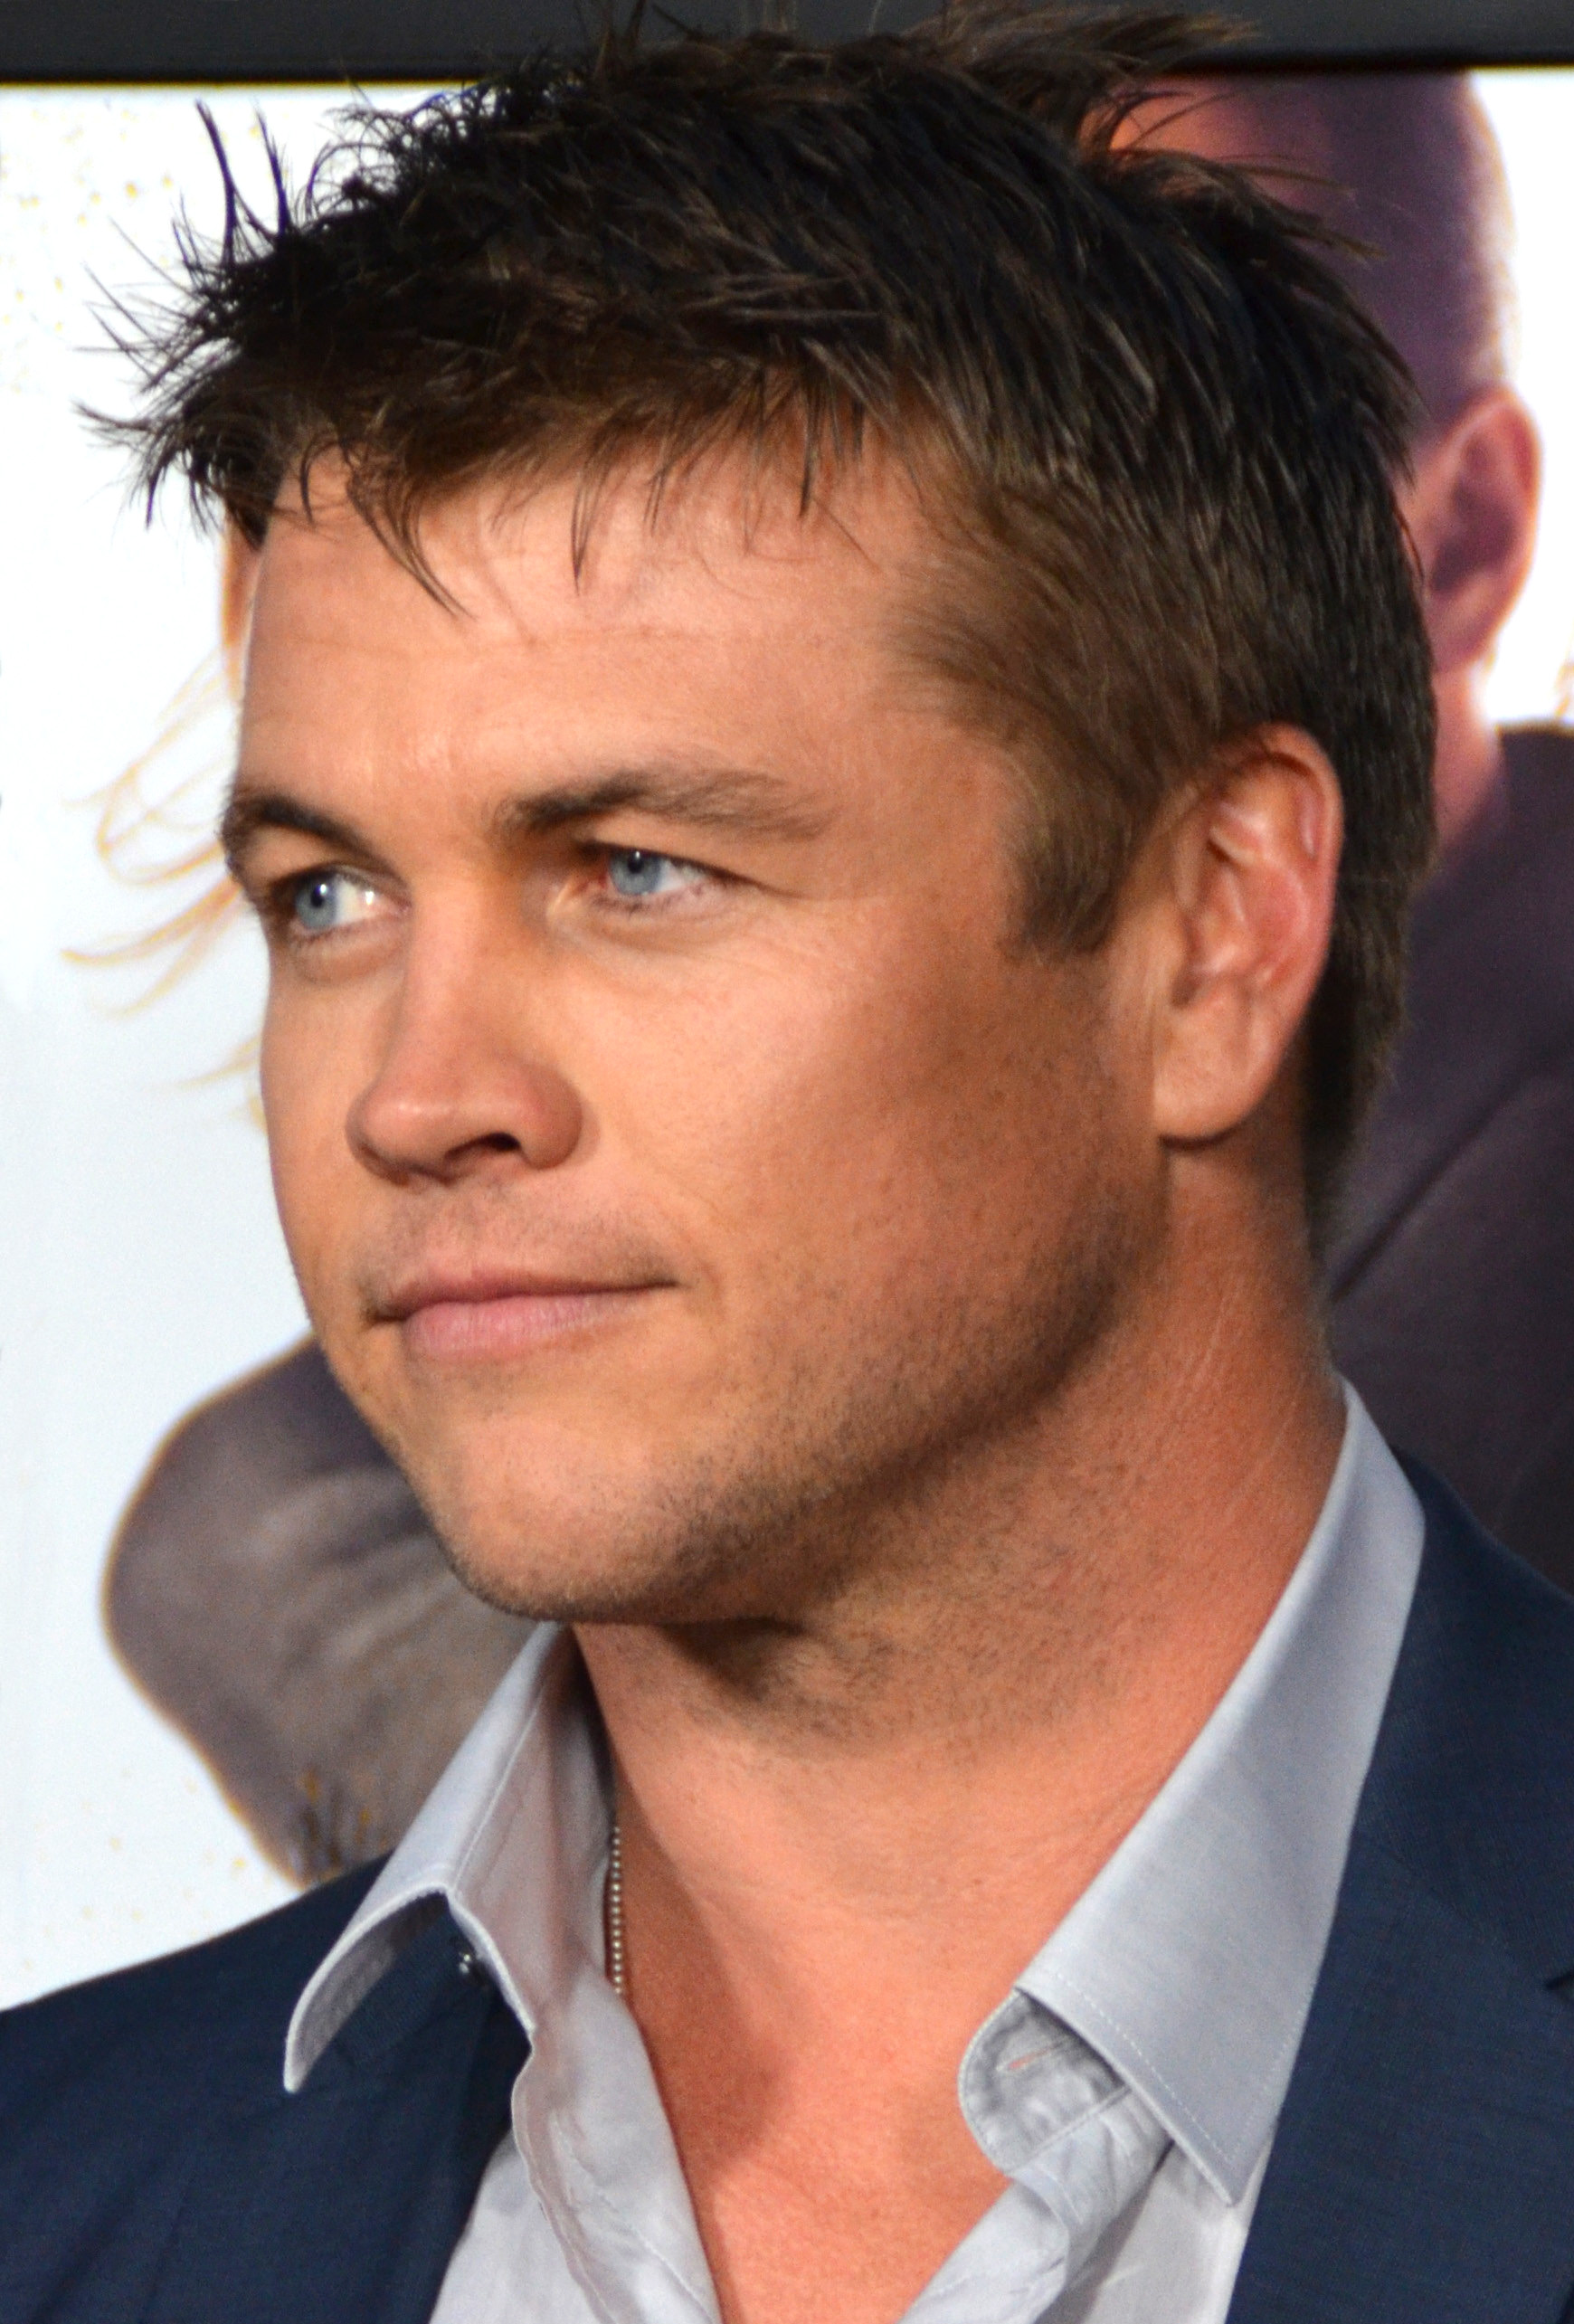 https://upload.wikimedia.org/wikipedia/commons/d/d1/Luke_Hemsworth_Premiere_of_Kill_Me_Three_Times_(cropped).jpg